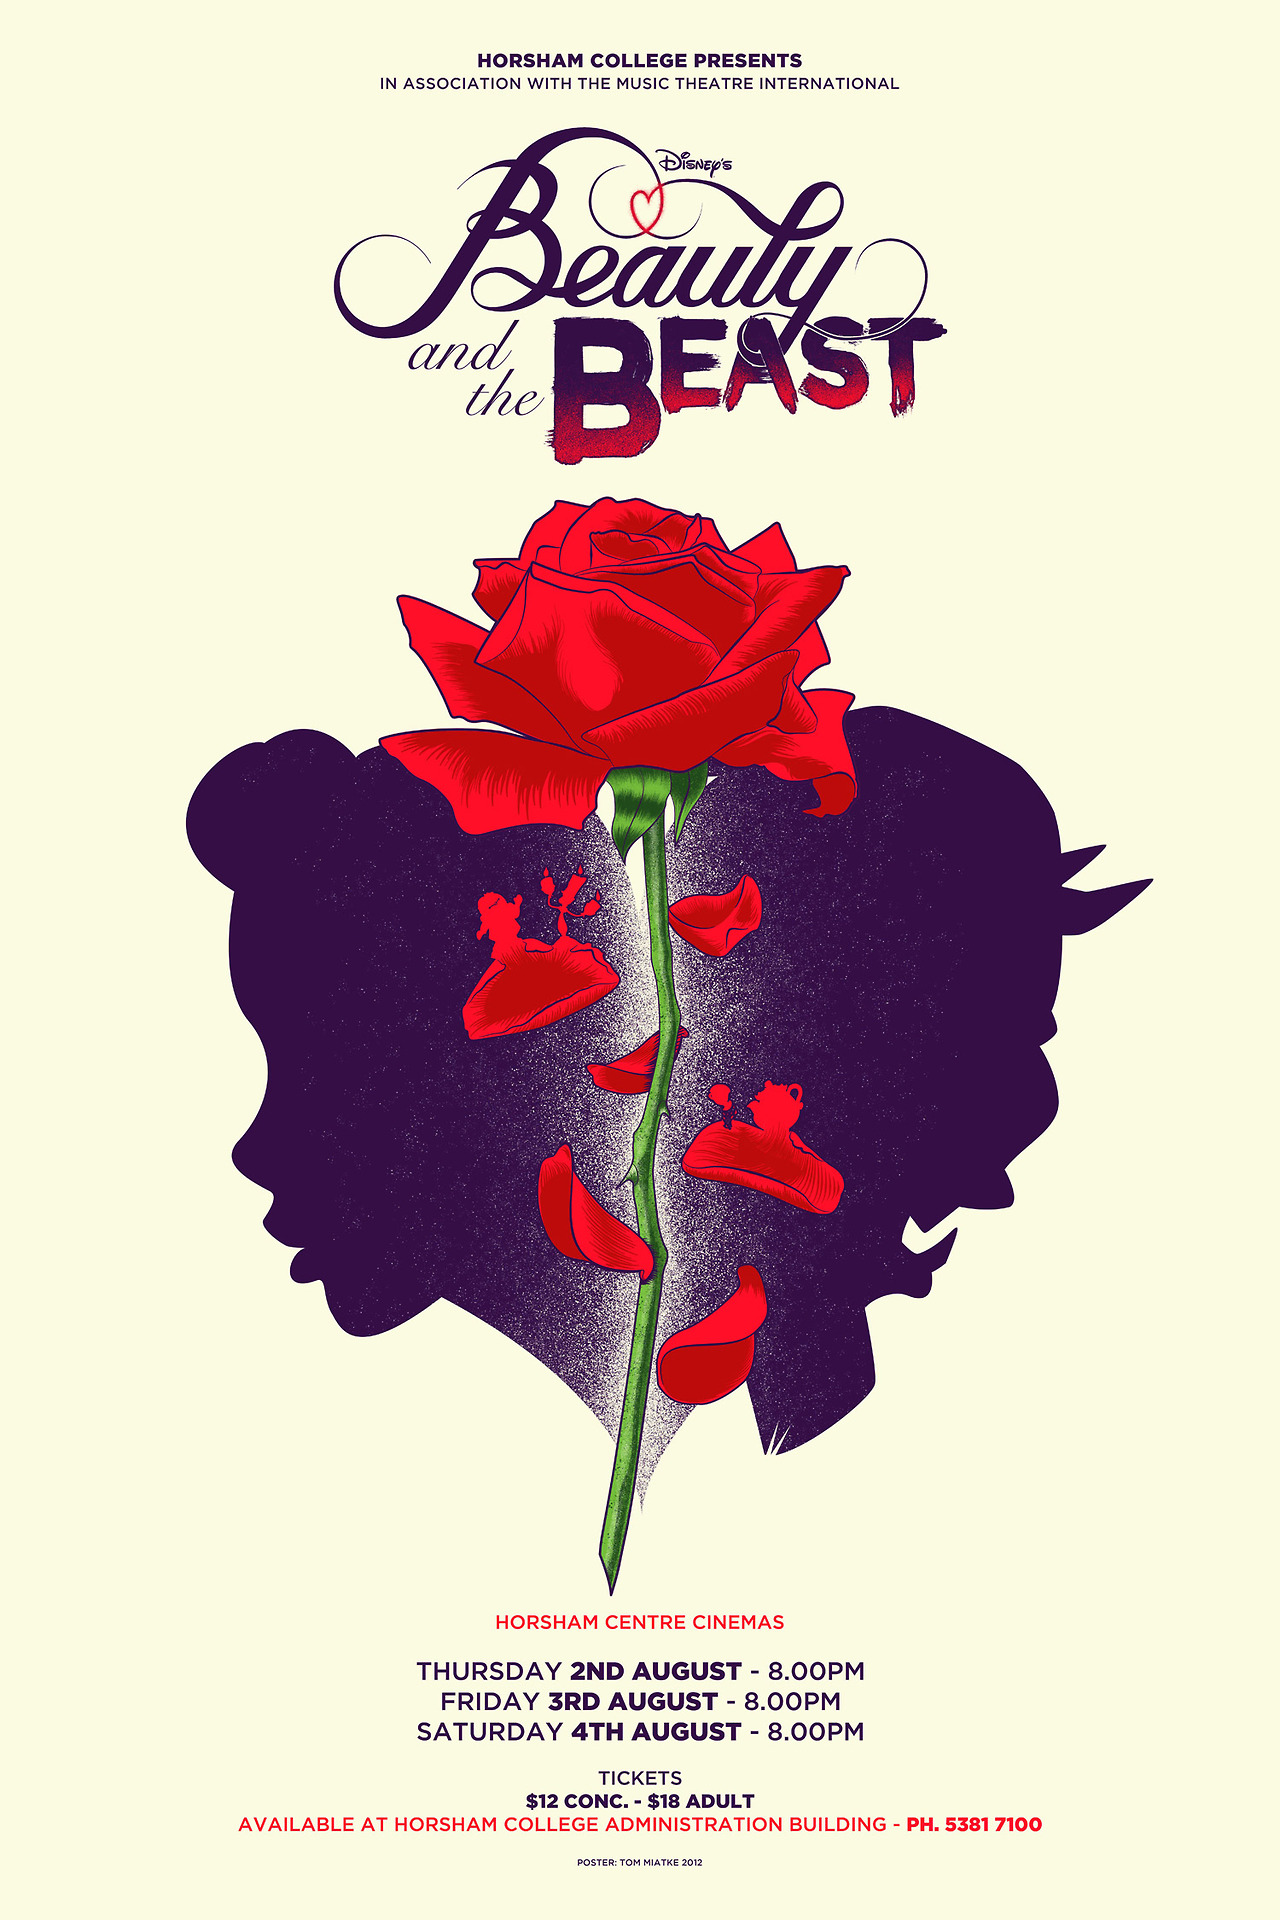 Some older work of mine! Thought I would throw some older stuff on here to get things going! 'Beauty and the Beast' I had massive amounts of fun on this project.  BUT! Something new is coming this very night! Stay tuned people! Very very happy with the outcome!